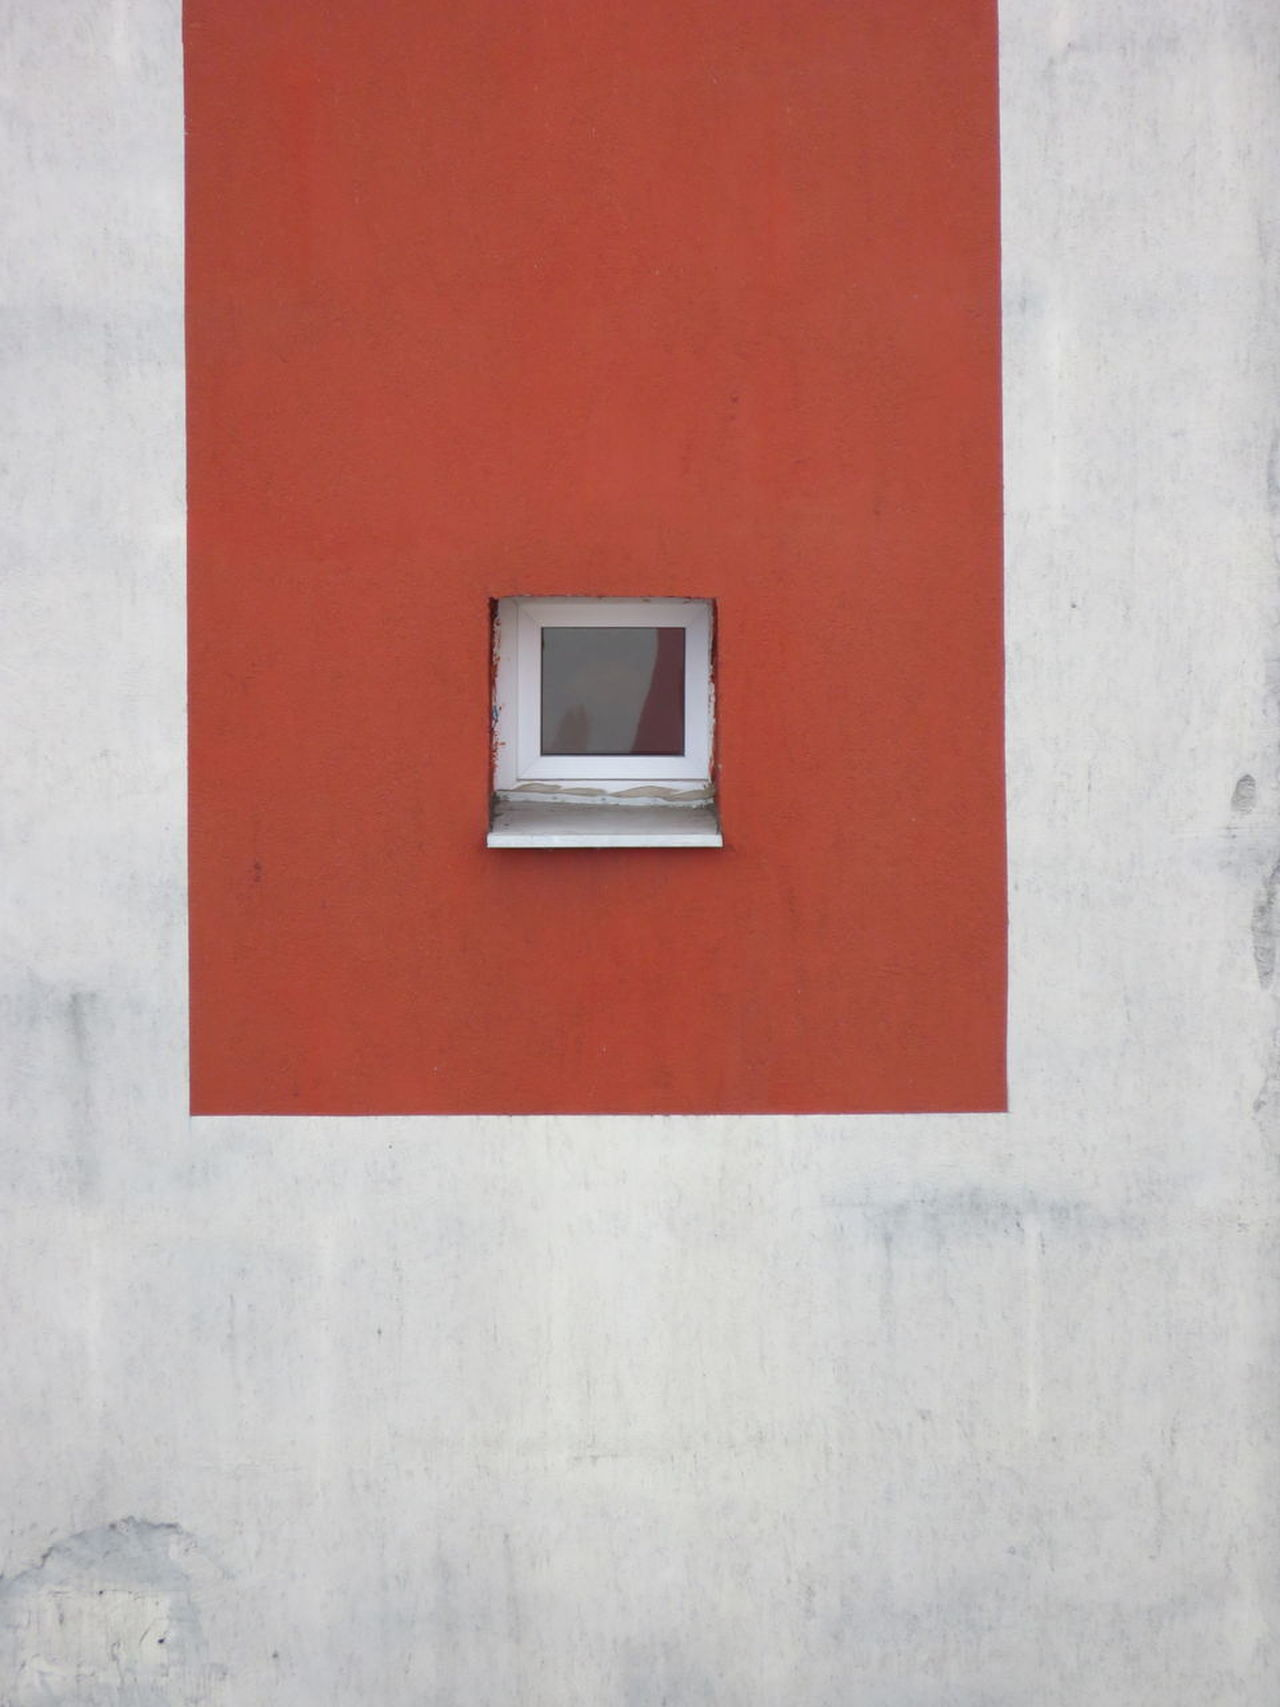 Architecture Close-up Day Full Frame Minimal Minimalism No People Outdoors Red